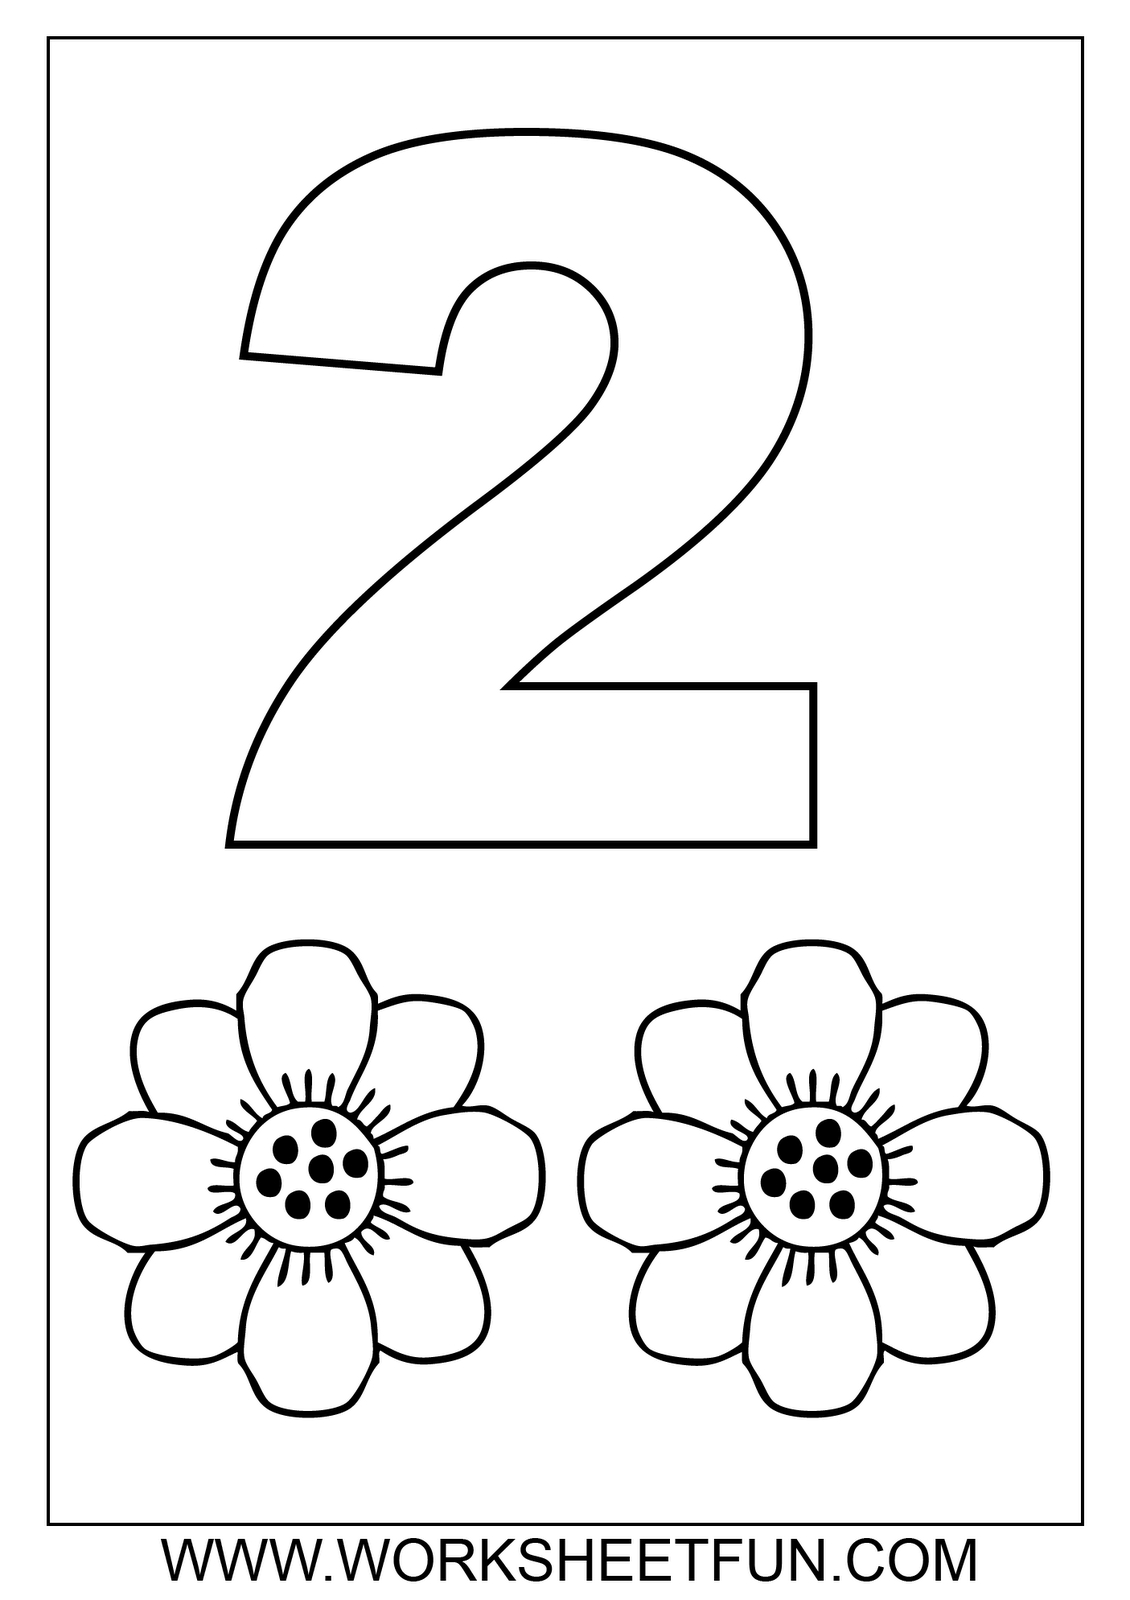 Free Math Worksheets-Number Coloring | Number | Numbers Preschool - Free Preschool Coloring Sheets Printables